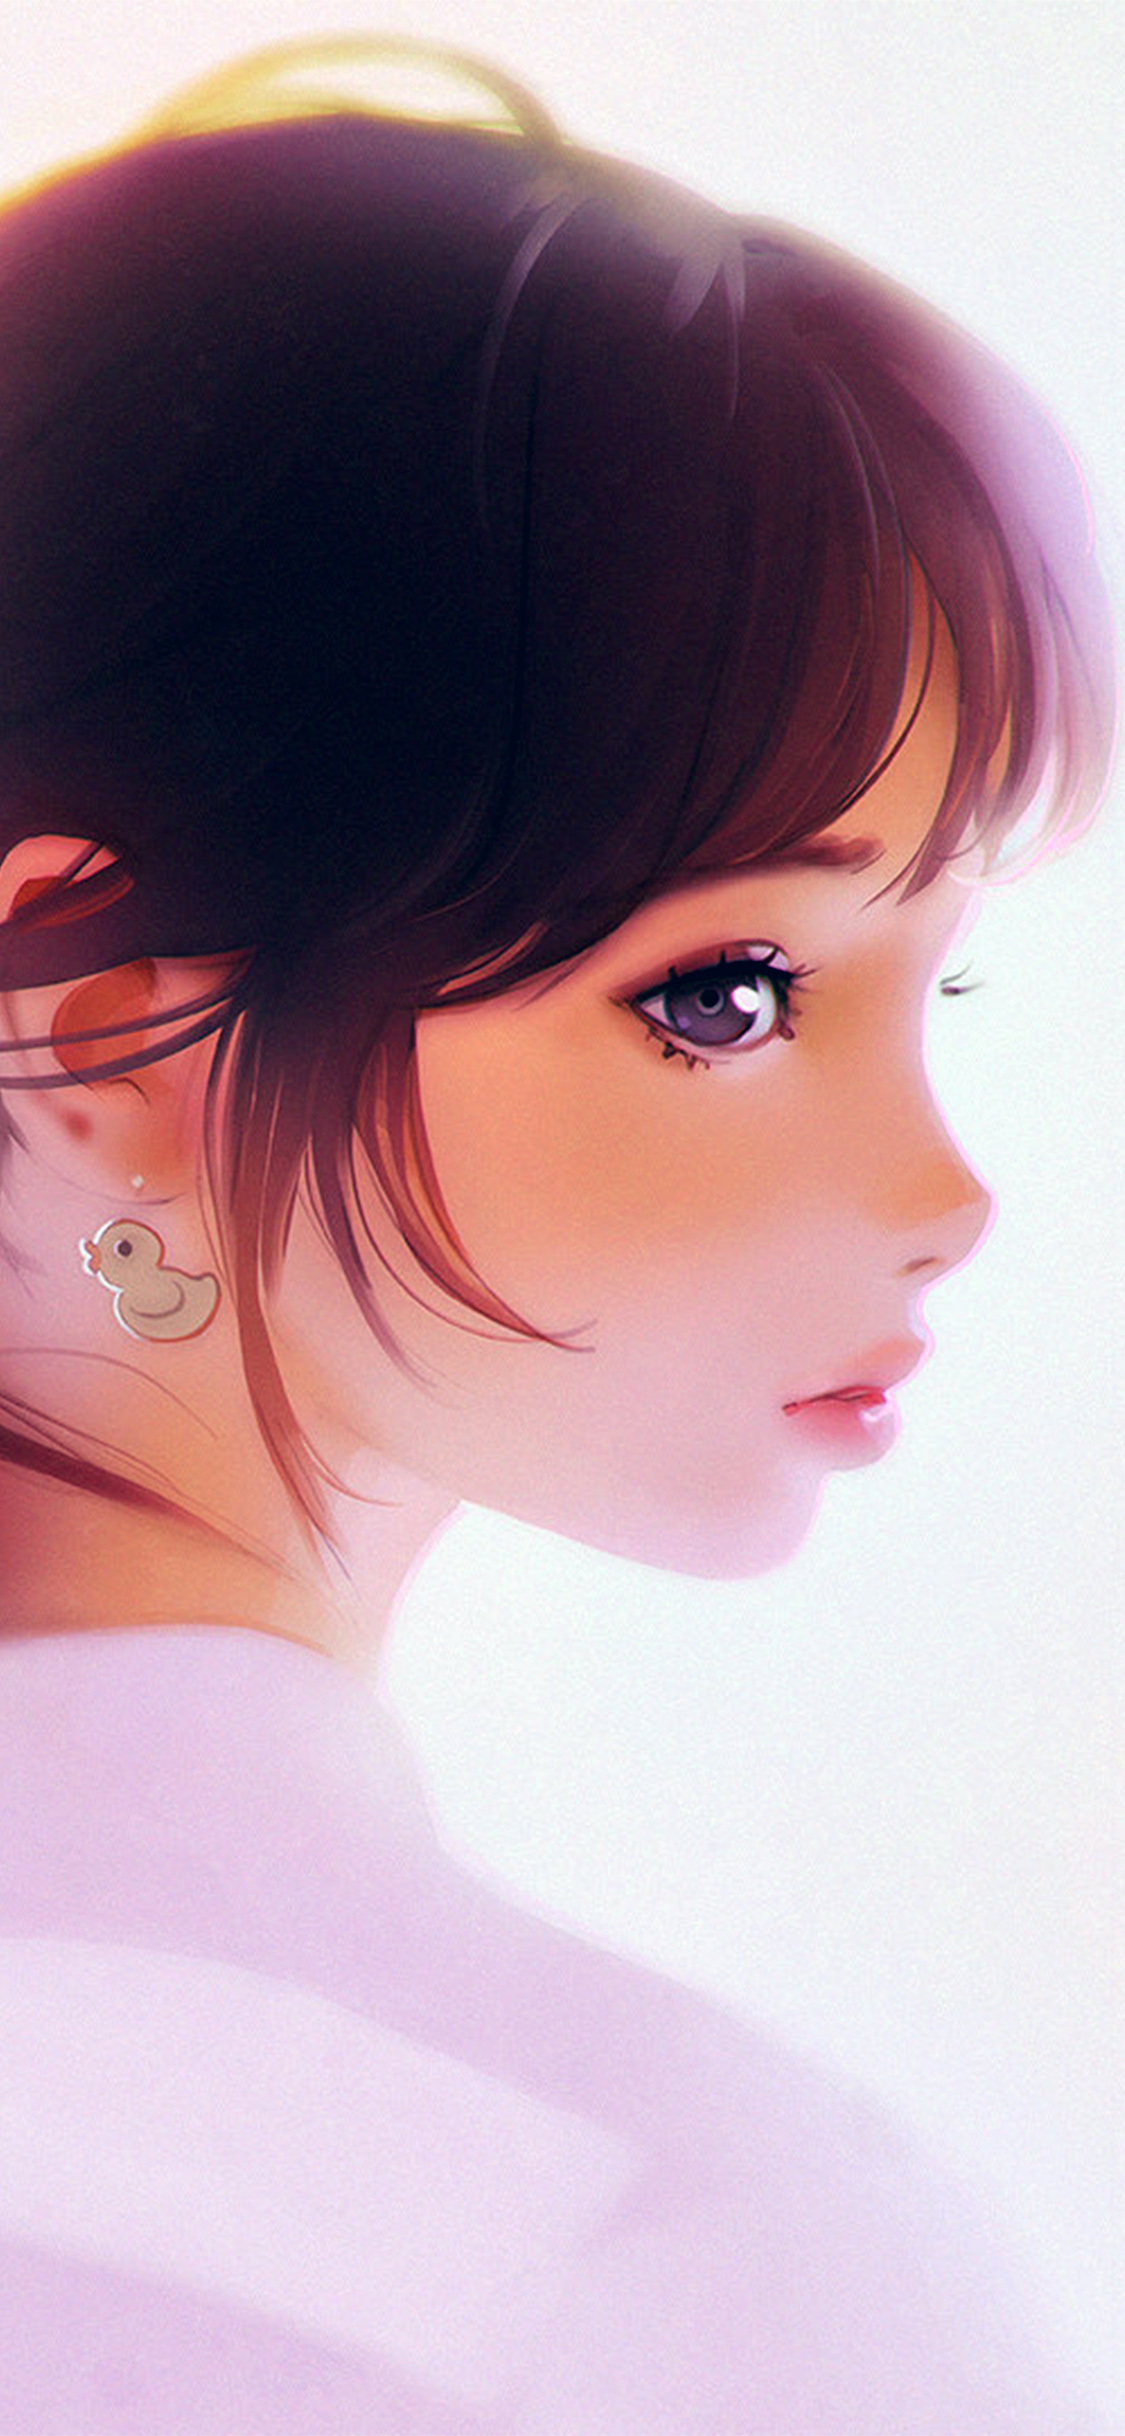 iPhoneXpapers.com-Apple-iPhone-wallpaper-av42-girl-face-cute-ilya-kuvshinov-illustration-art-white